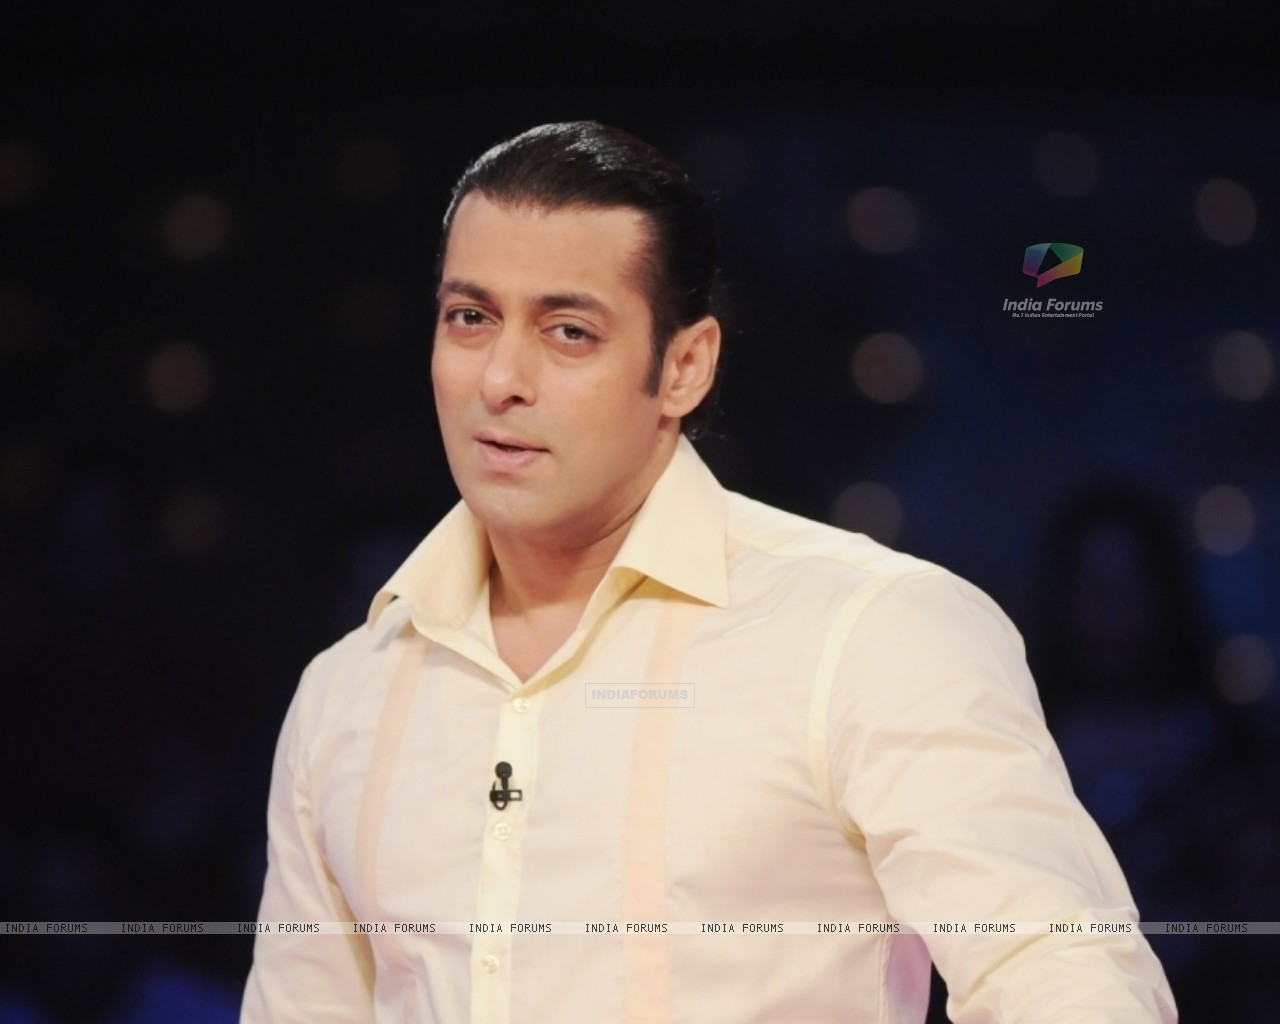 salman khan - wallpaper (size:1280x1024)